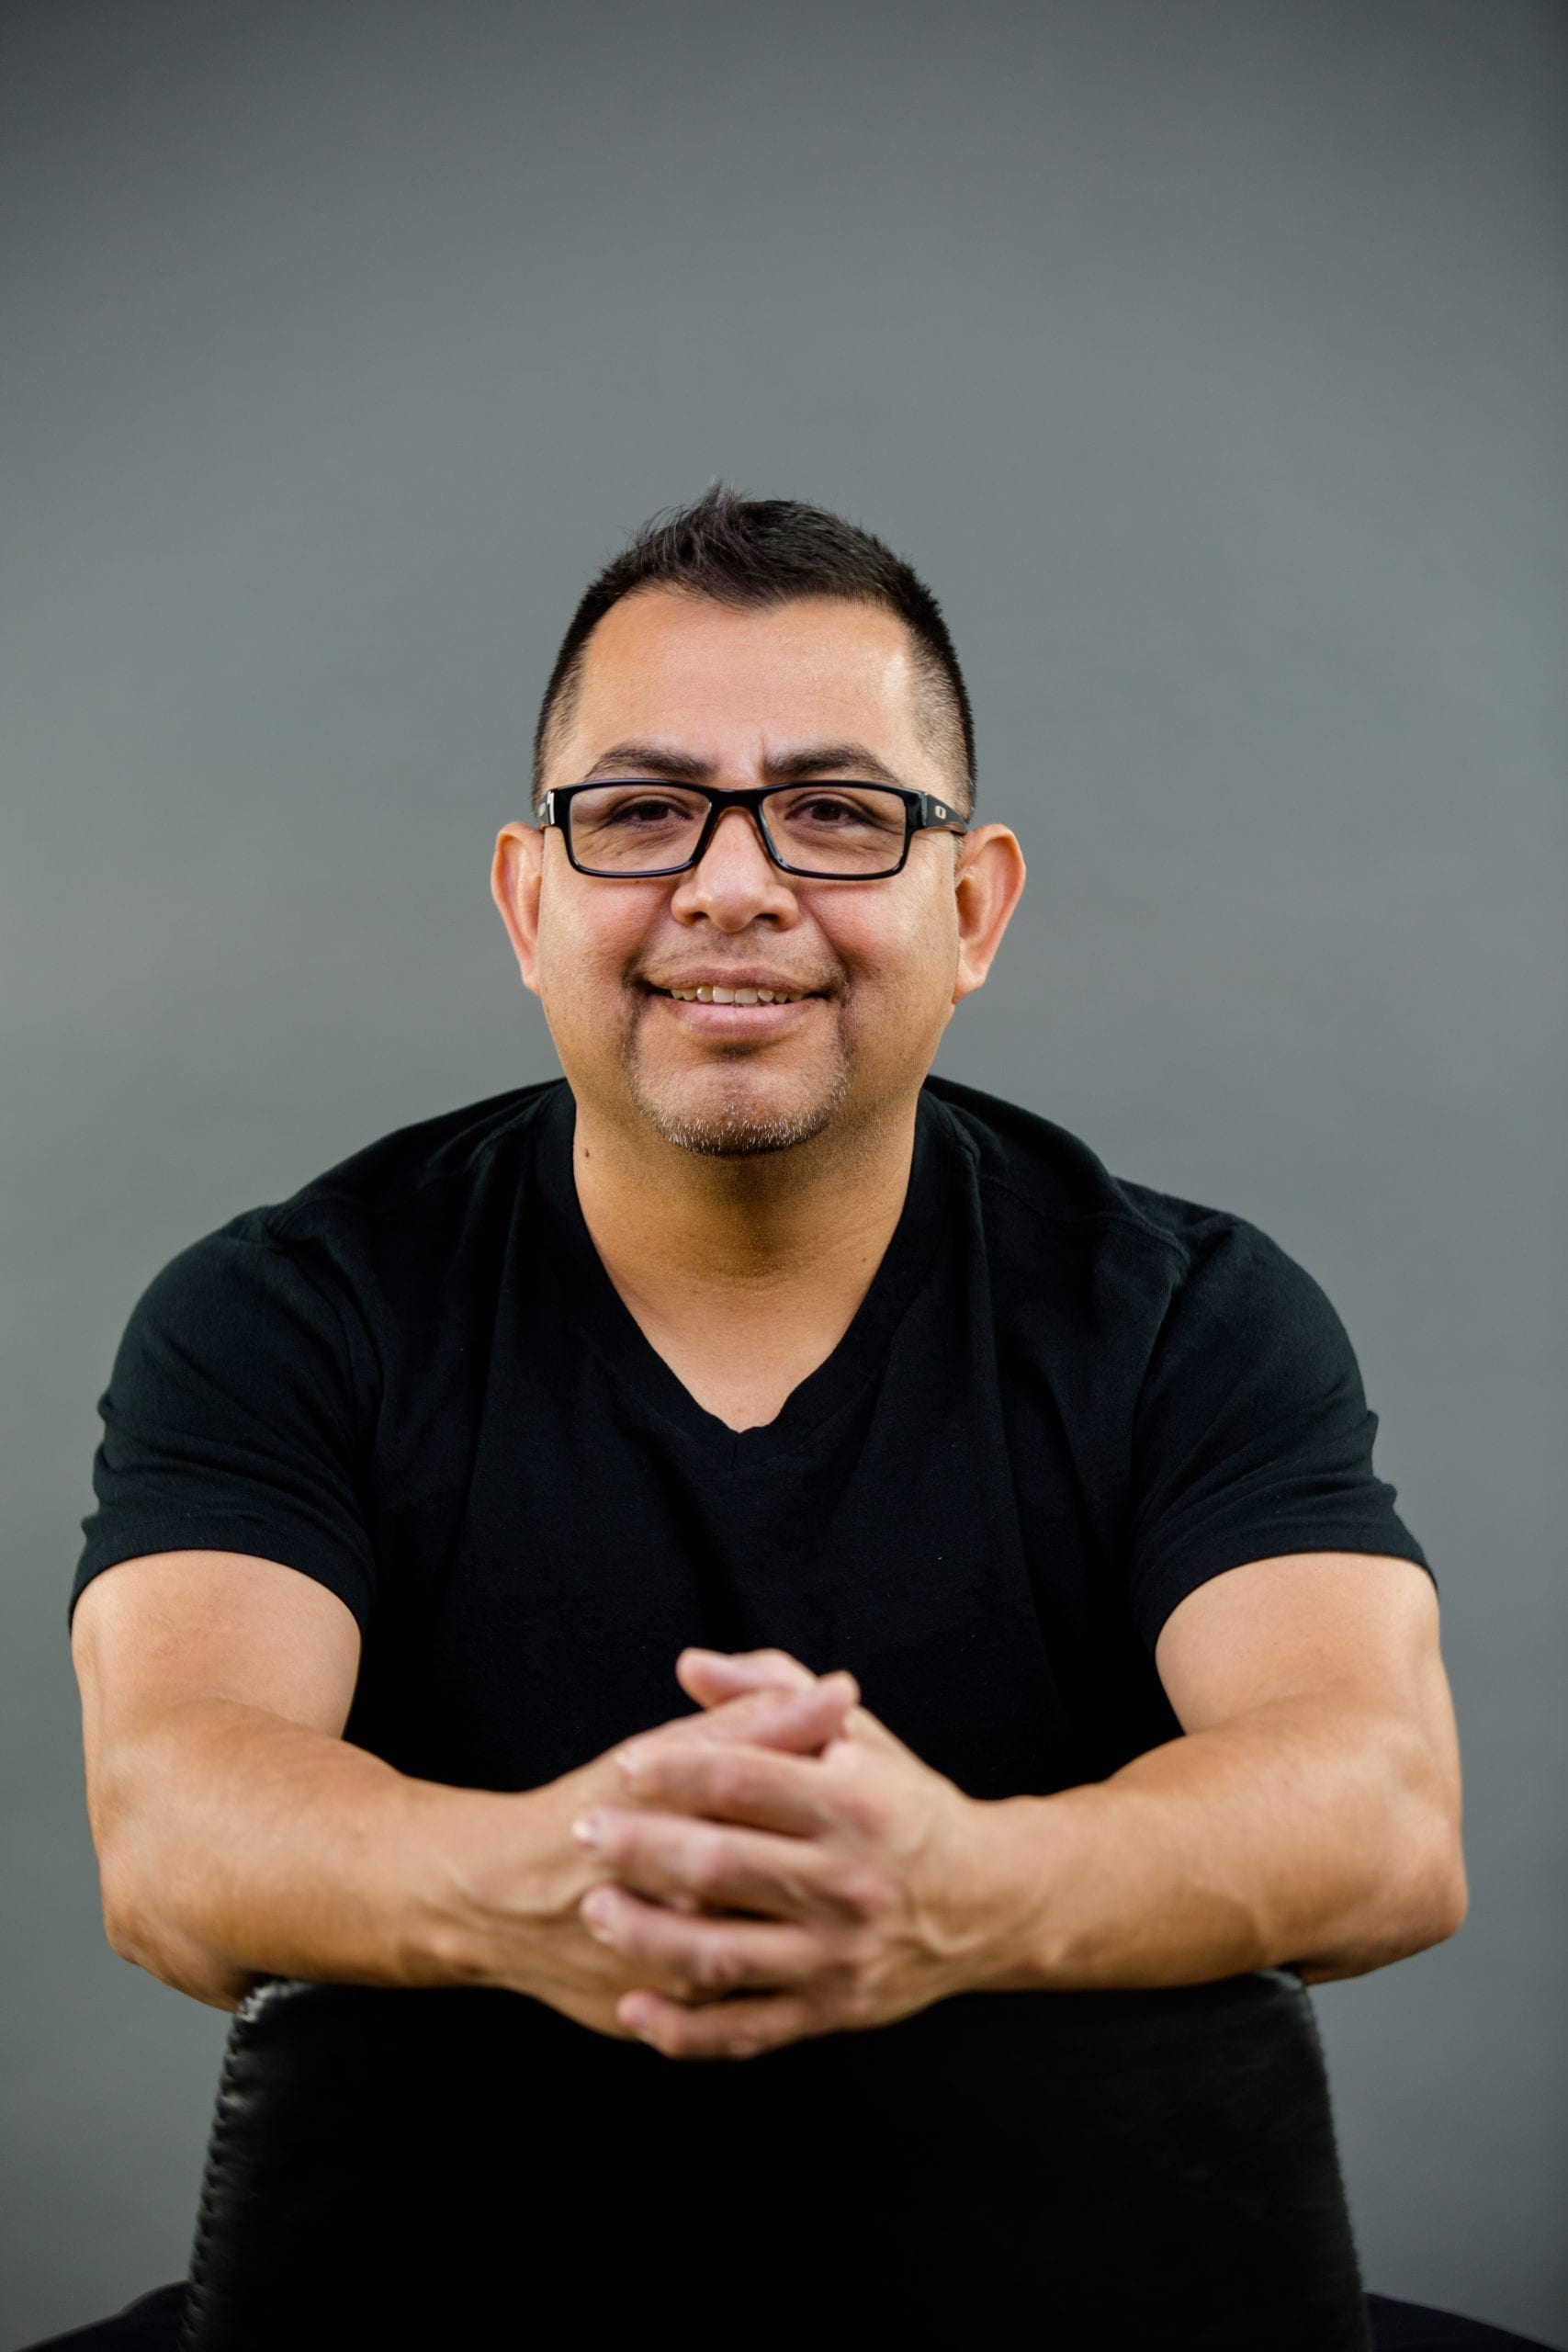 Alberto Aguilar, Owner, Artistic Home Finishes